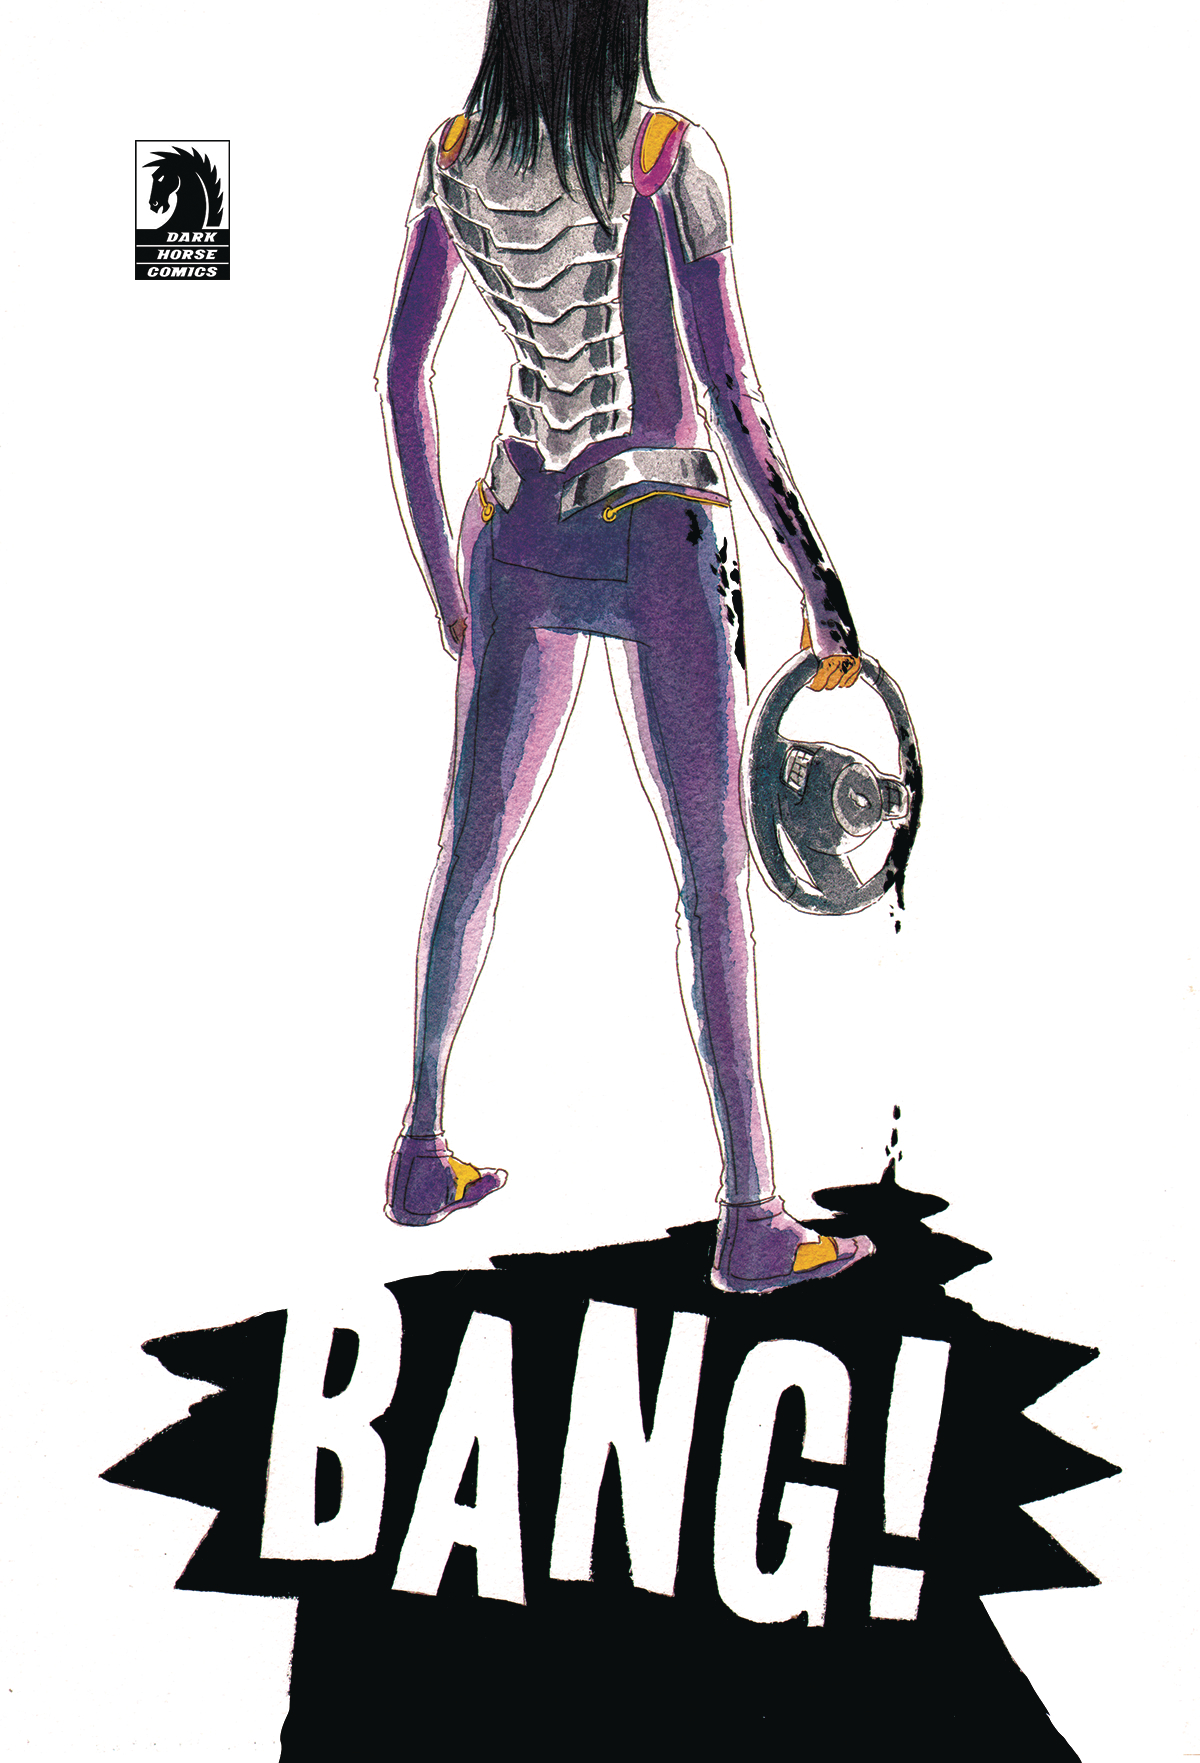 BANG #3 (OF 5) CVR B KINDT (RES)